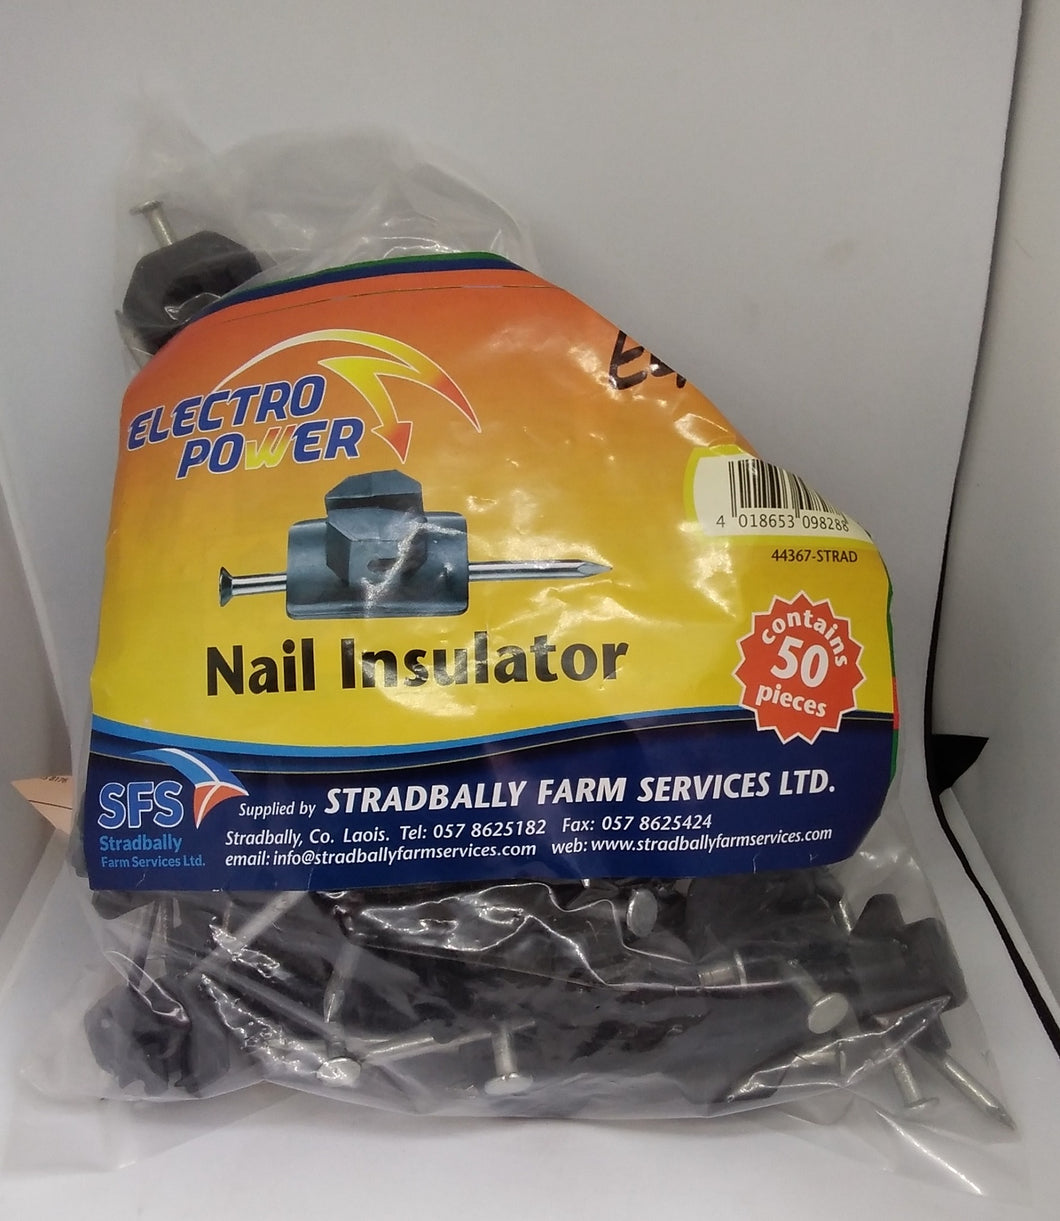 Electro Power Nail Insulator - 50 Pack